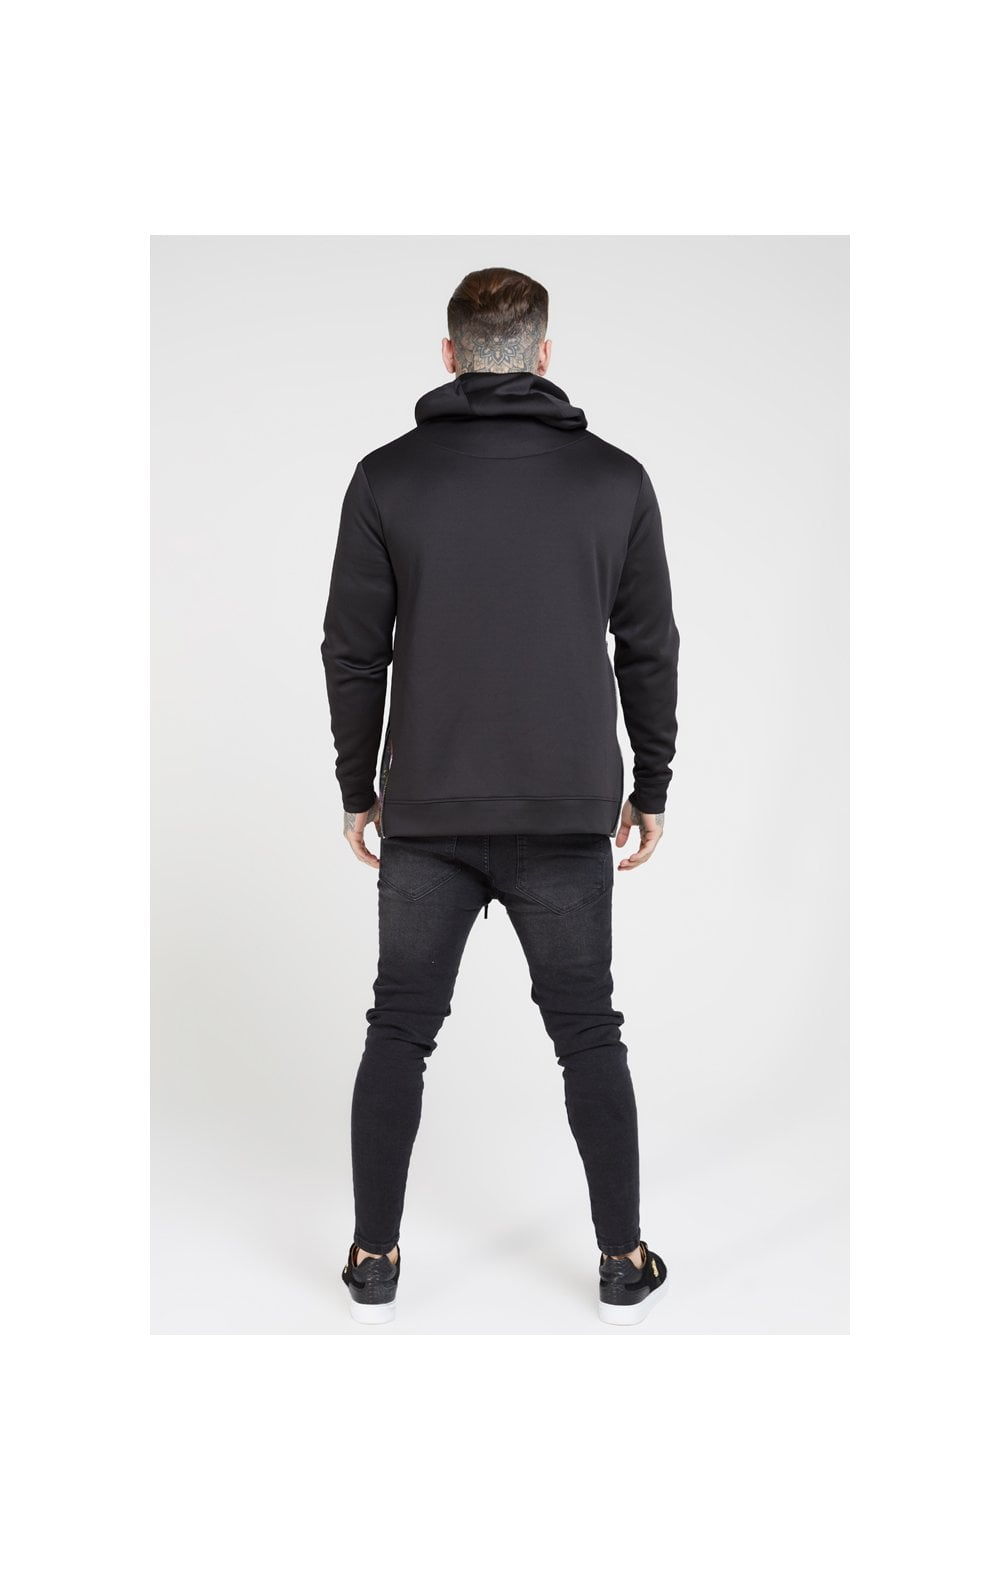 SikSilk Side Zip Tape Hybrid Hoodie - Black & Oil Paint (5)